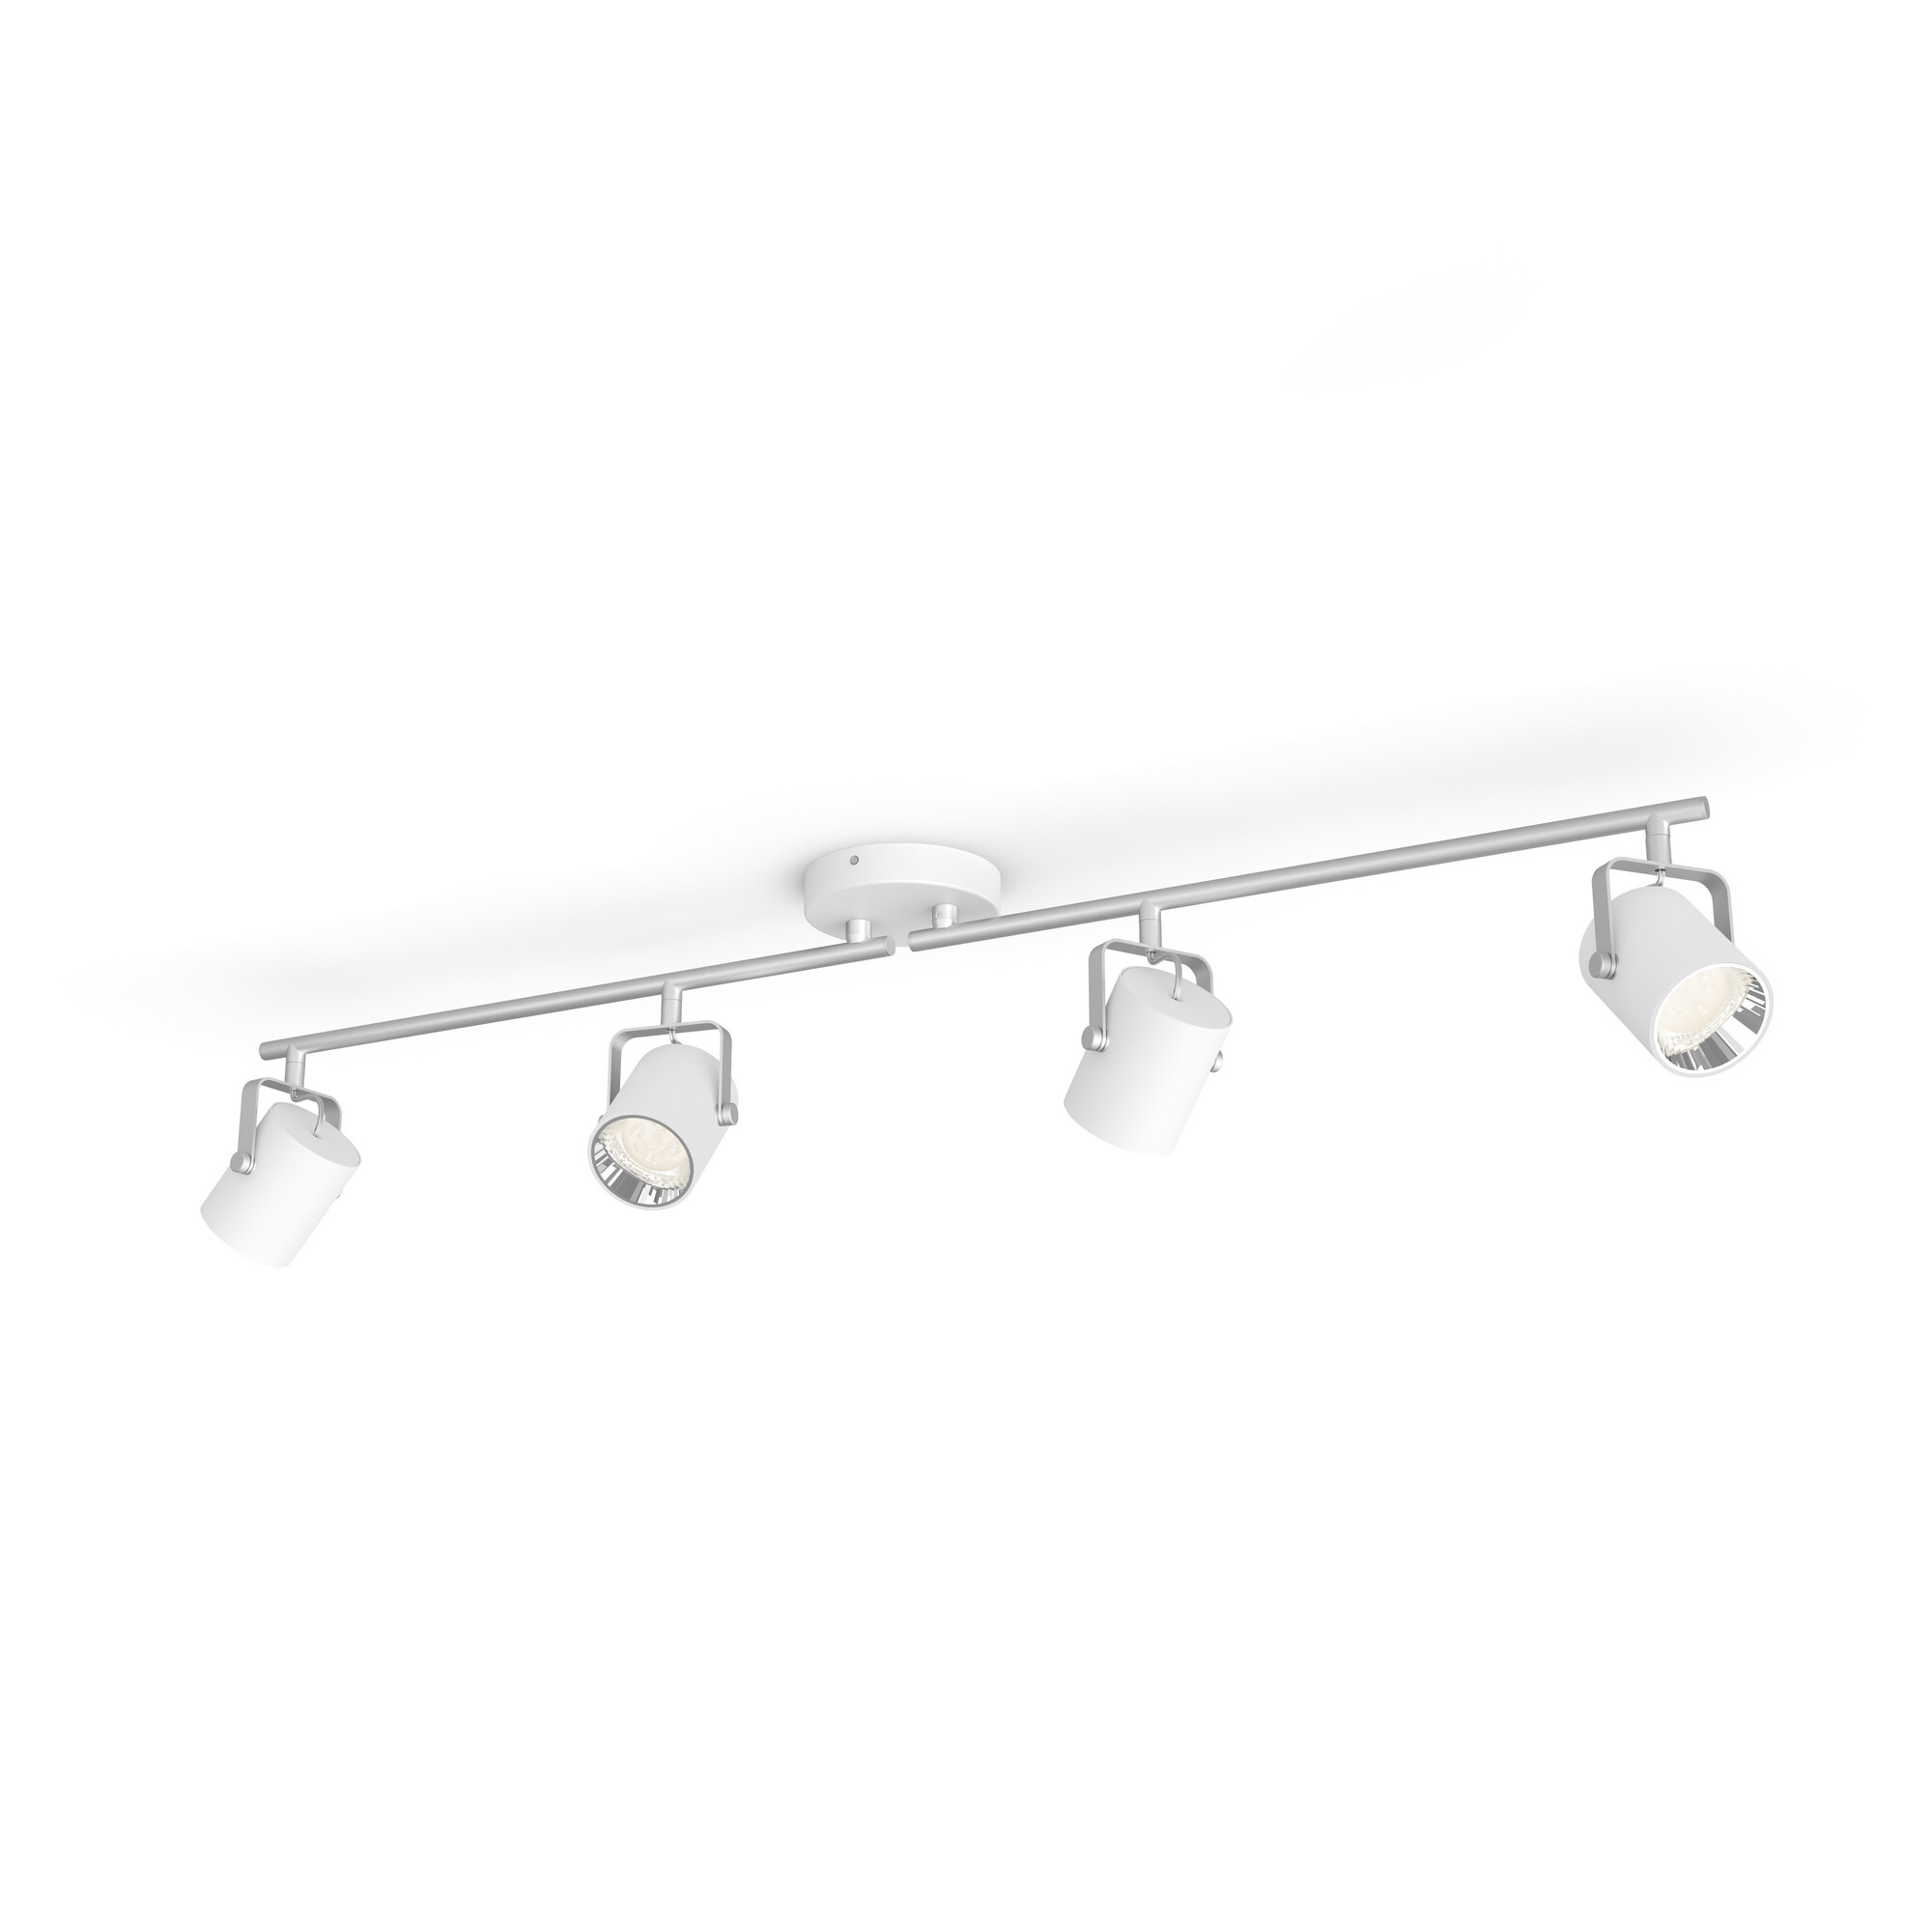 Philips BYRE Opbouwspot LED 4x4,3W/430lm Wit